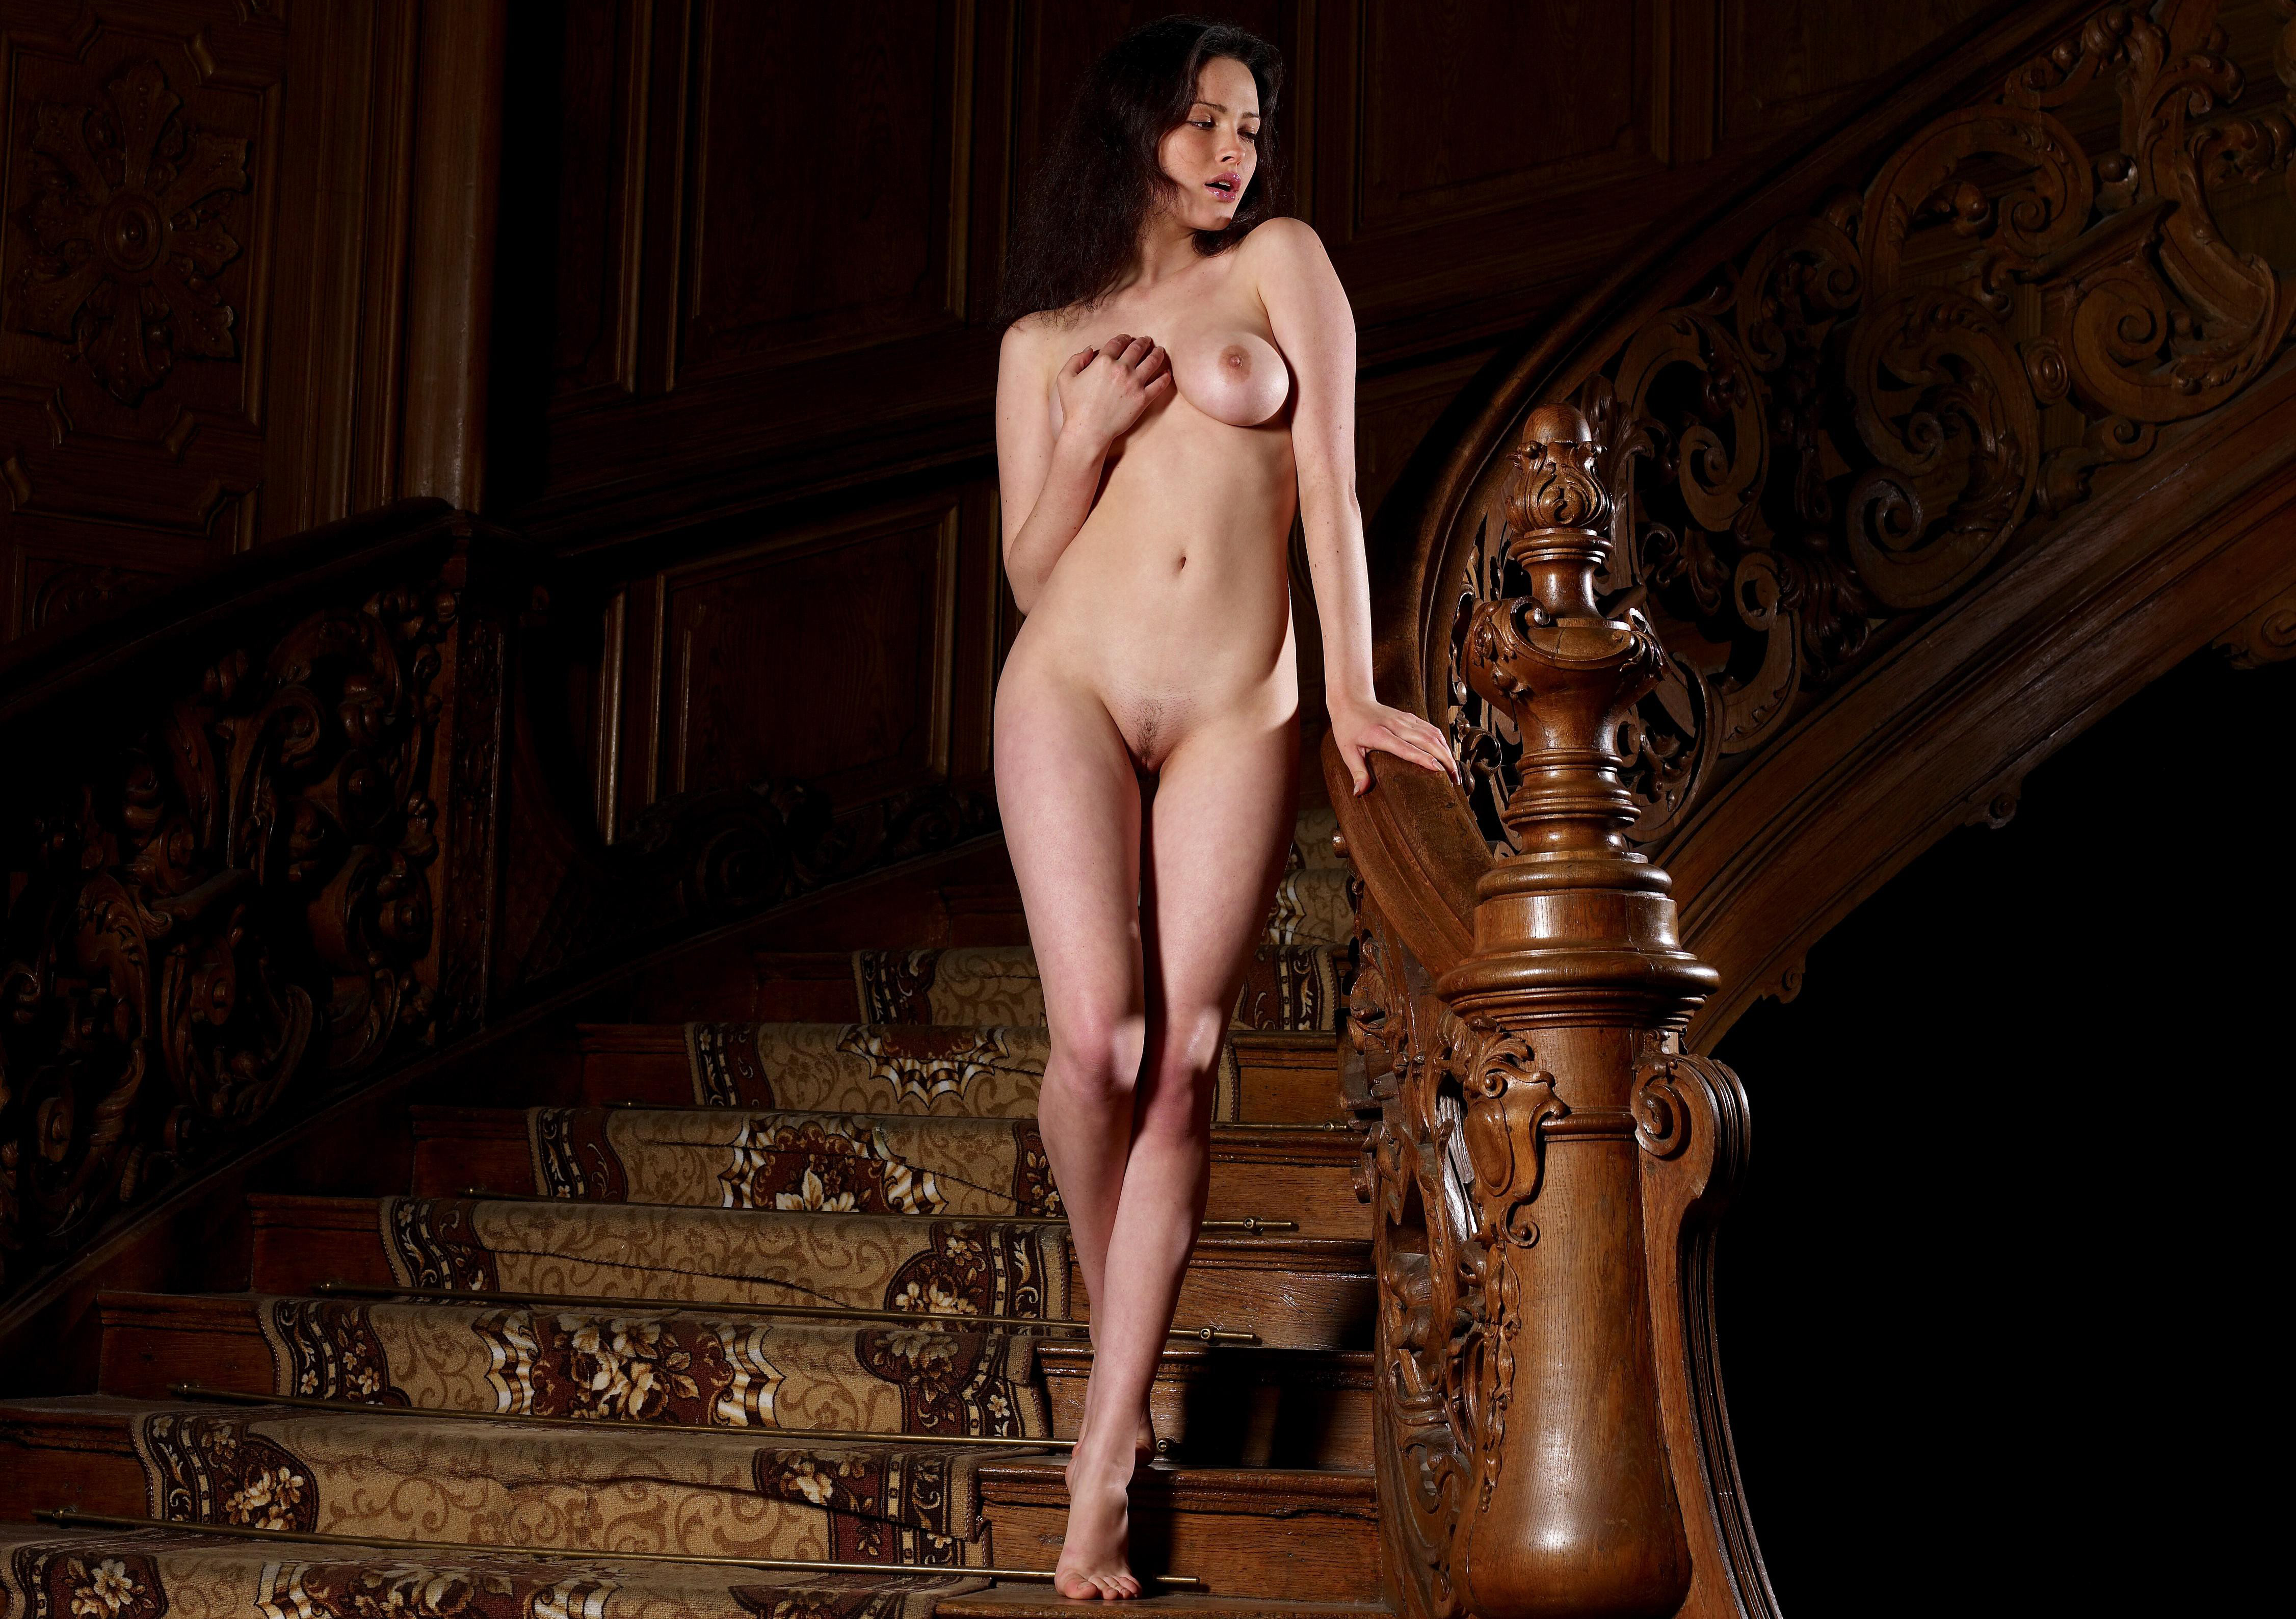 Dasha Astafieva Nude Pics Beautiful 10 dasha astafieva hd wallpapers and photos - ftopx